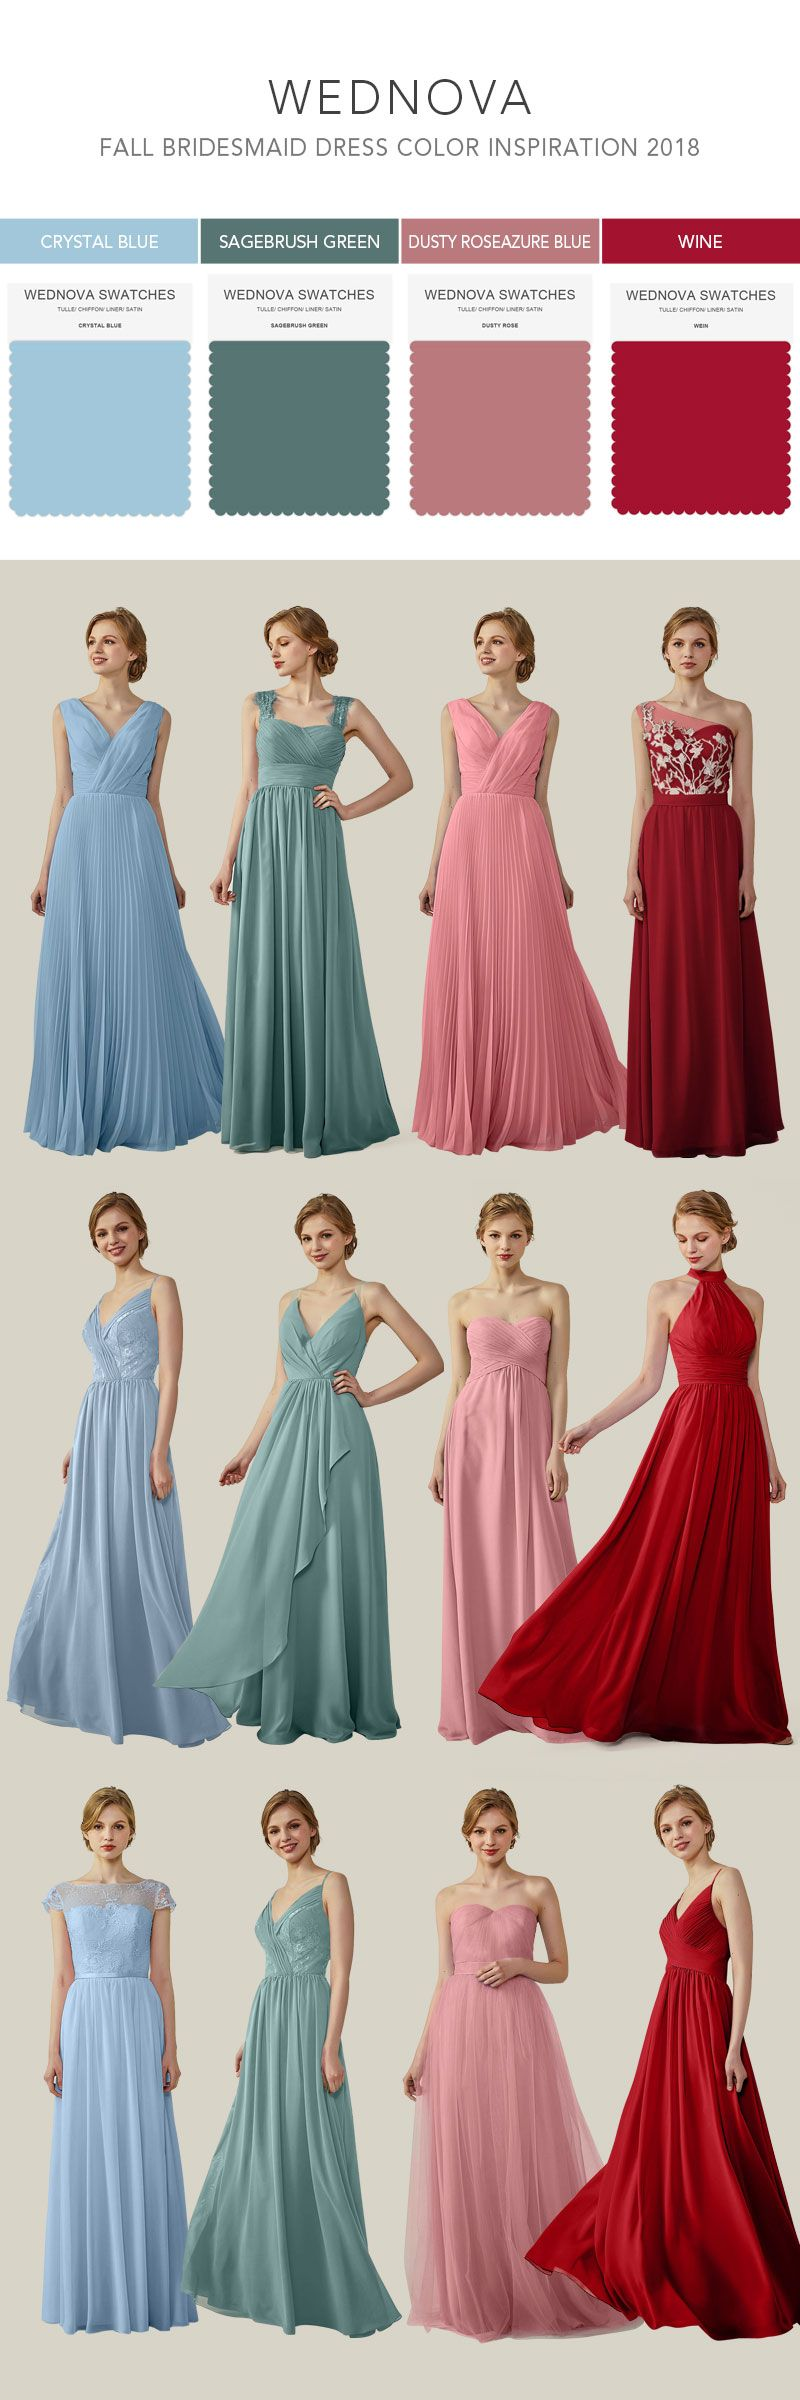 fall bridesmaid dresses chiffon straps dress with lace made to